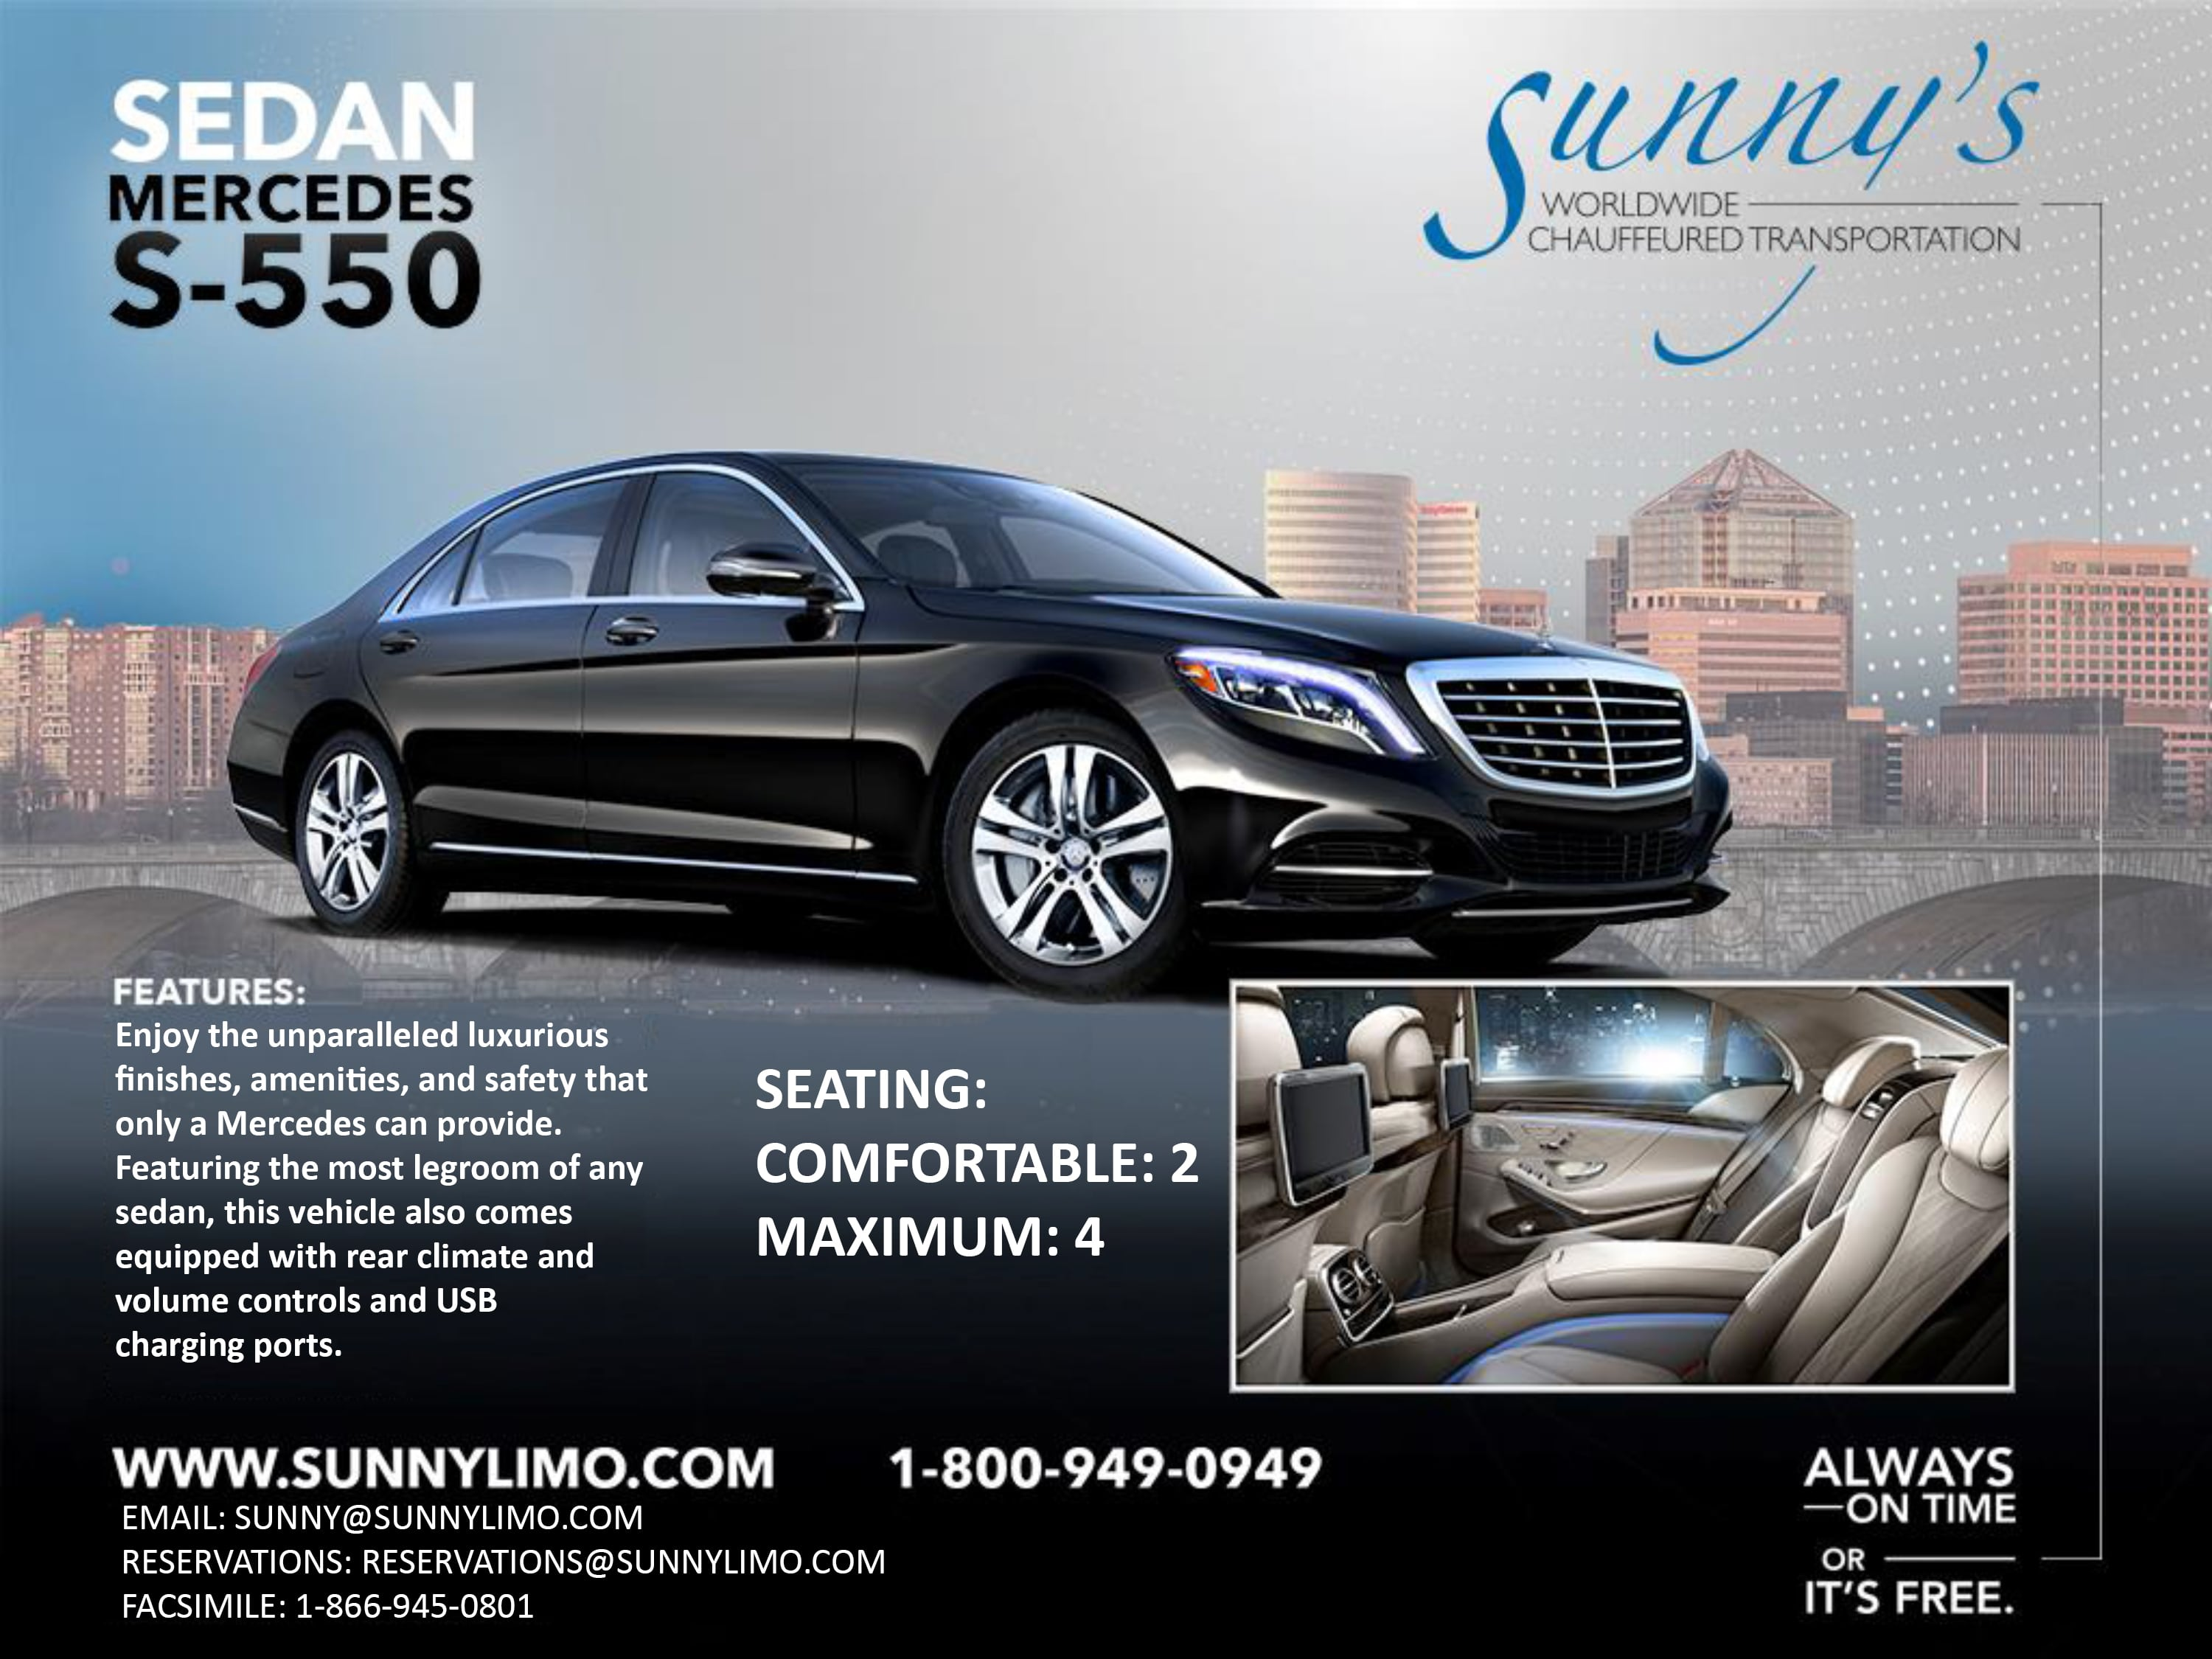 Sunny S Worldwide Chauffeured Transportation